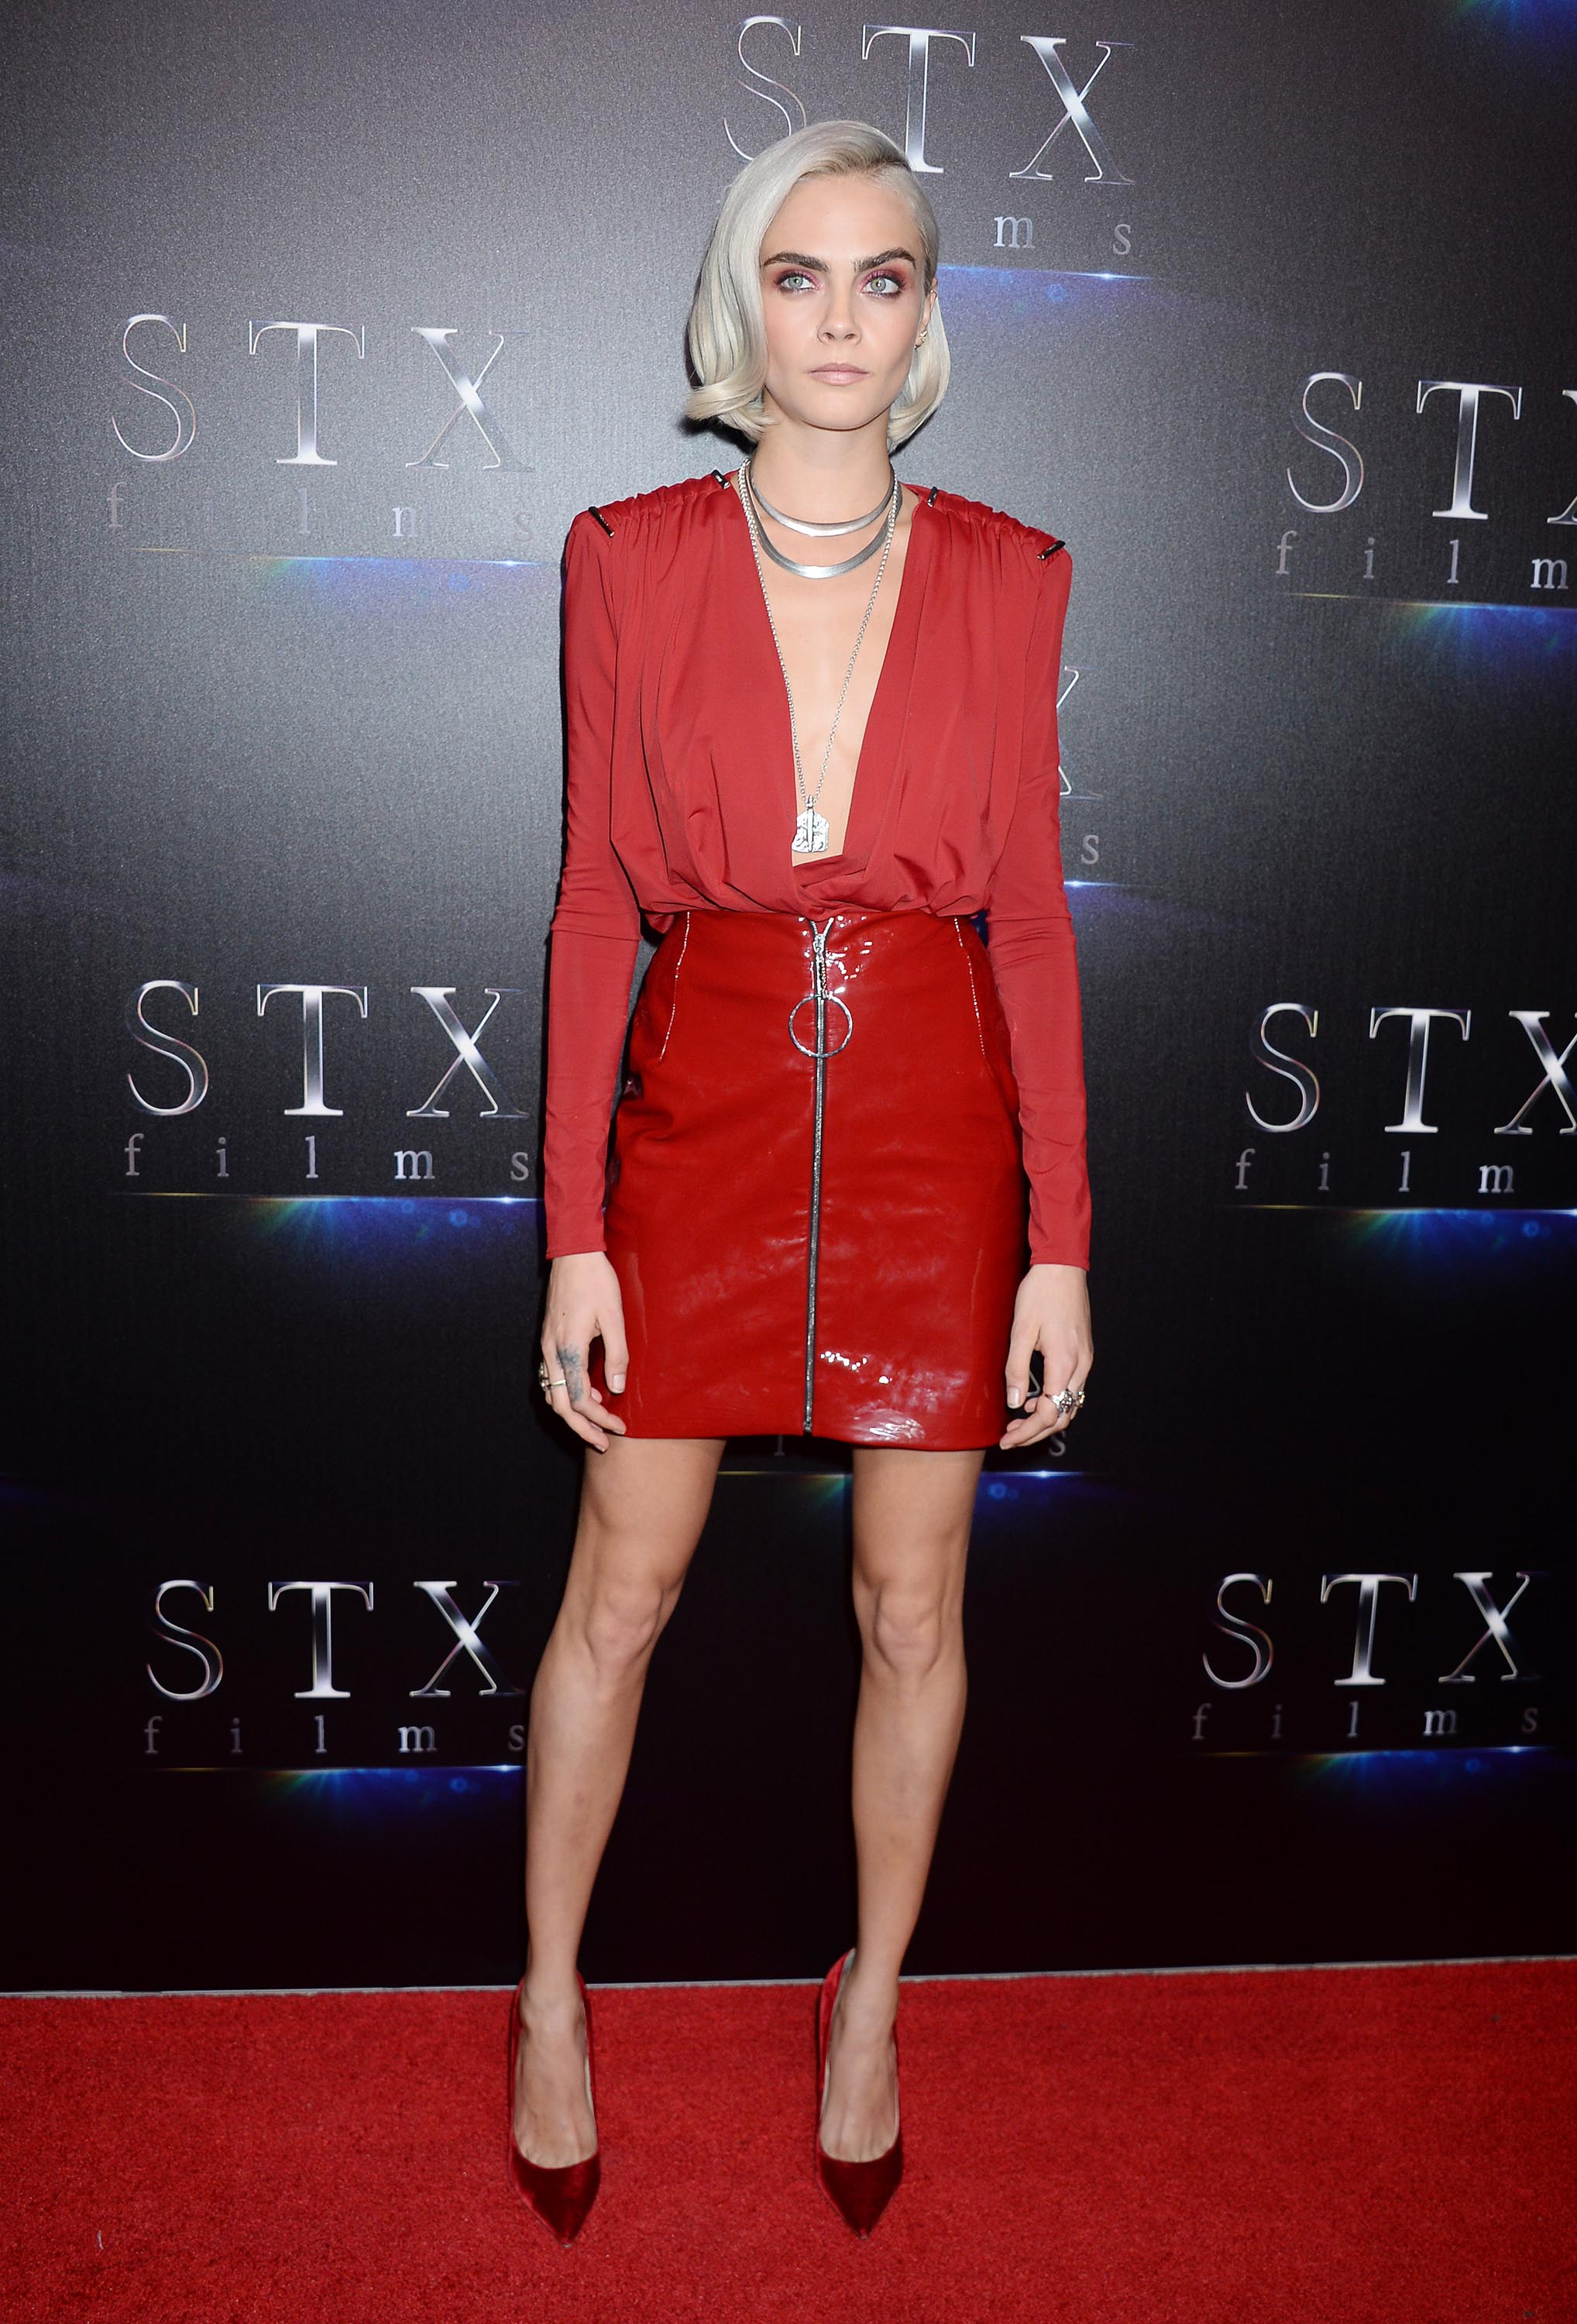 Cara Delevingne attends The State of the Industry presentation